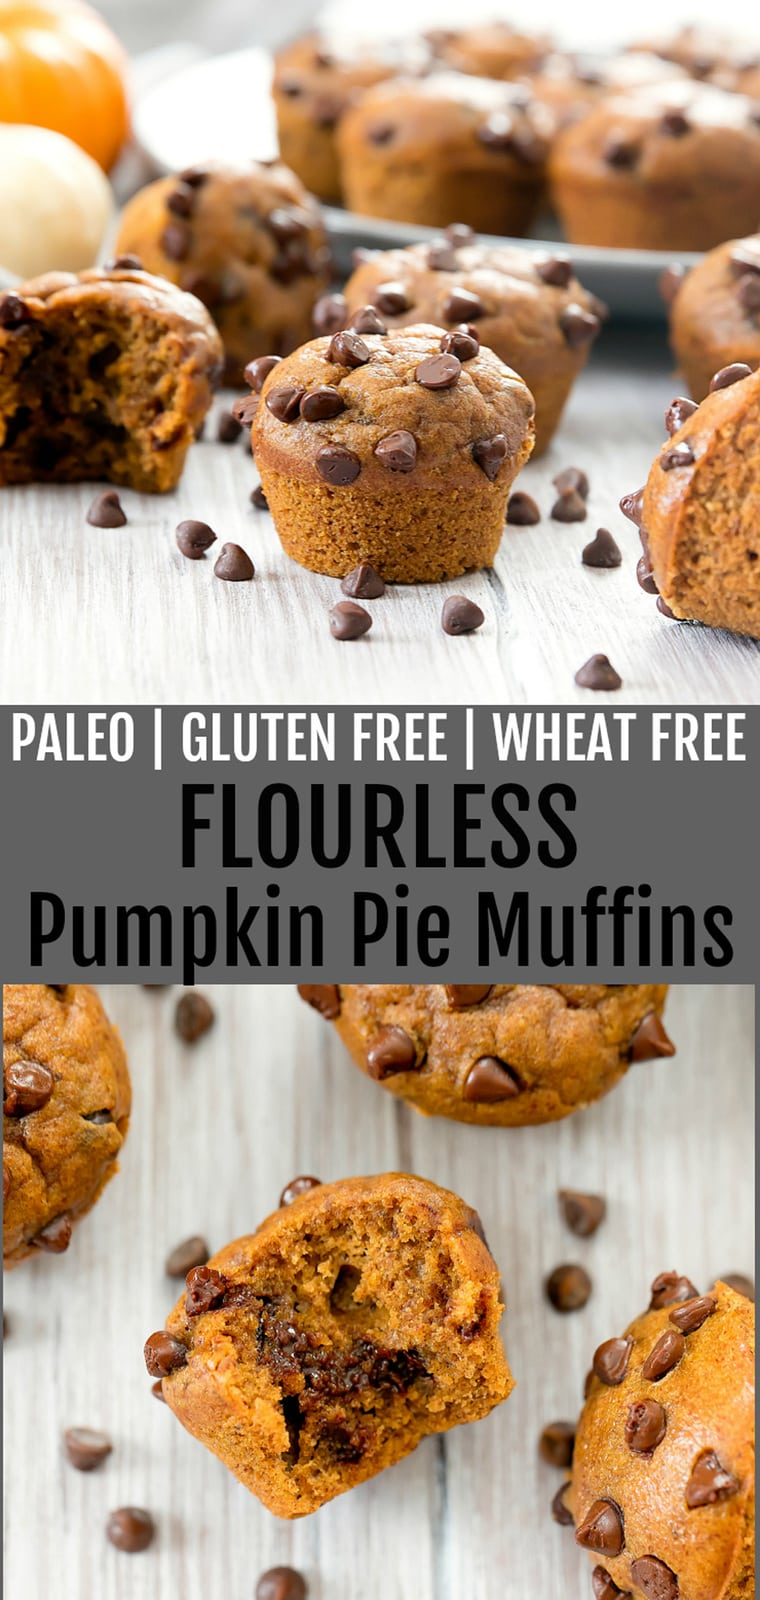 Flourless Pumpkin Pie Muffins. Fluffy, delicious and easy. Ready in less than 30 minutes. Paleo, gluten free, wheat free and refined sugar free.